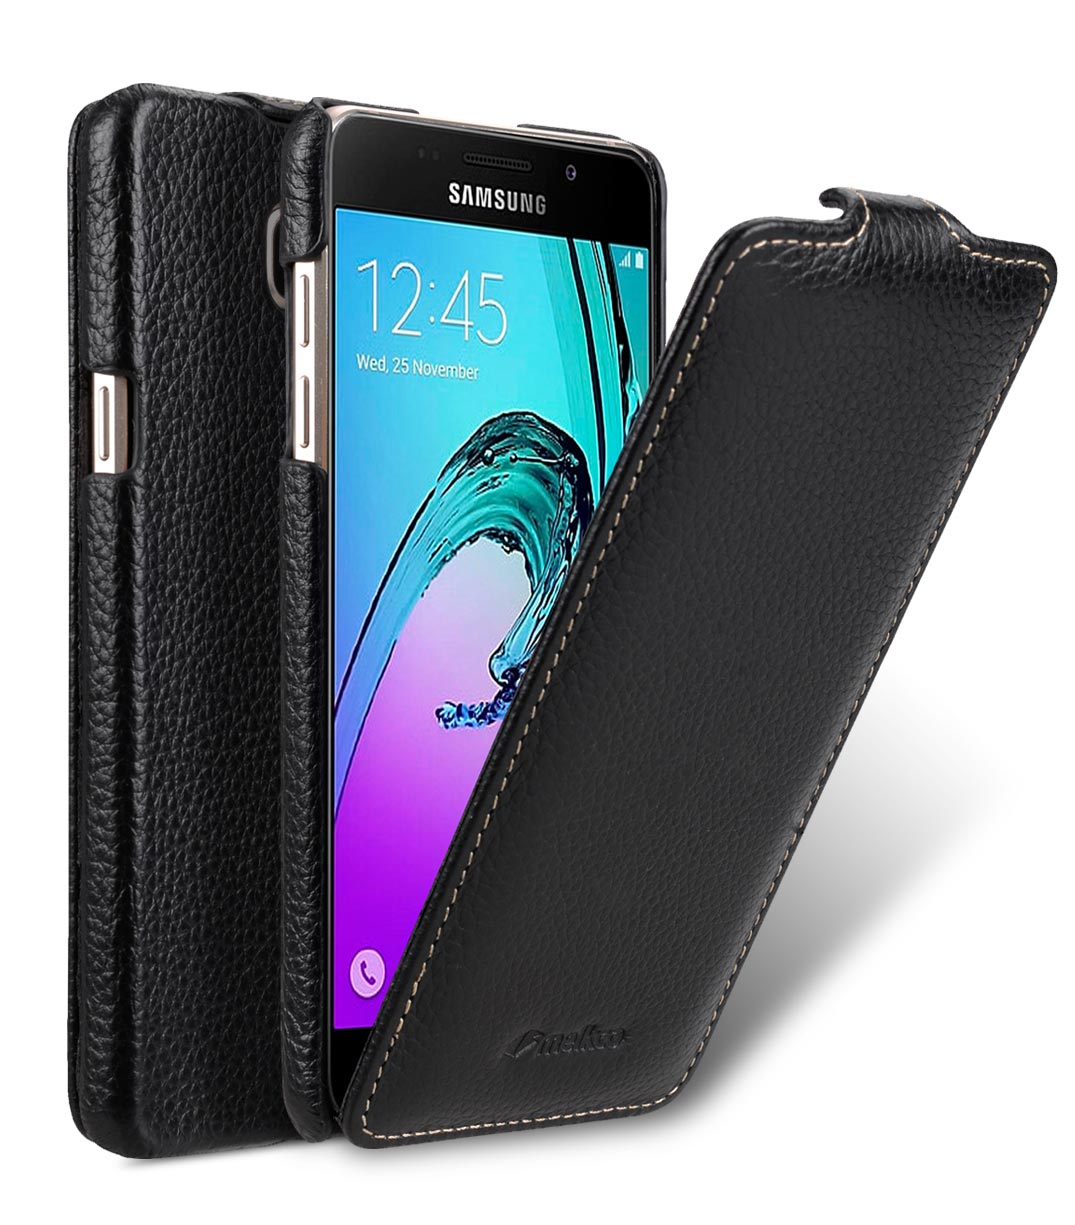 reputable site 10c70 9f2f6 Premium Genuine Leather Case for Samsung Galaxy A5 (2016) - Jacka Type  (Black LC)